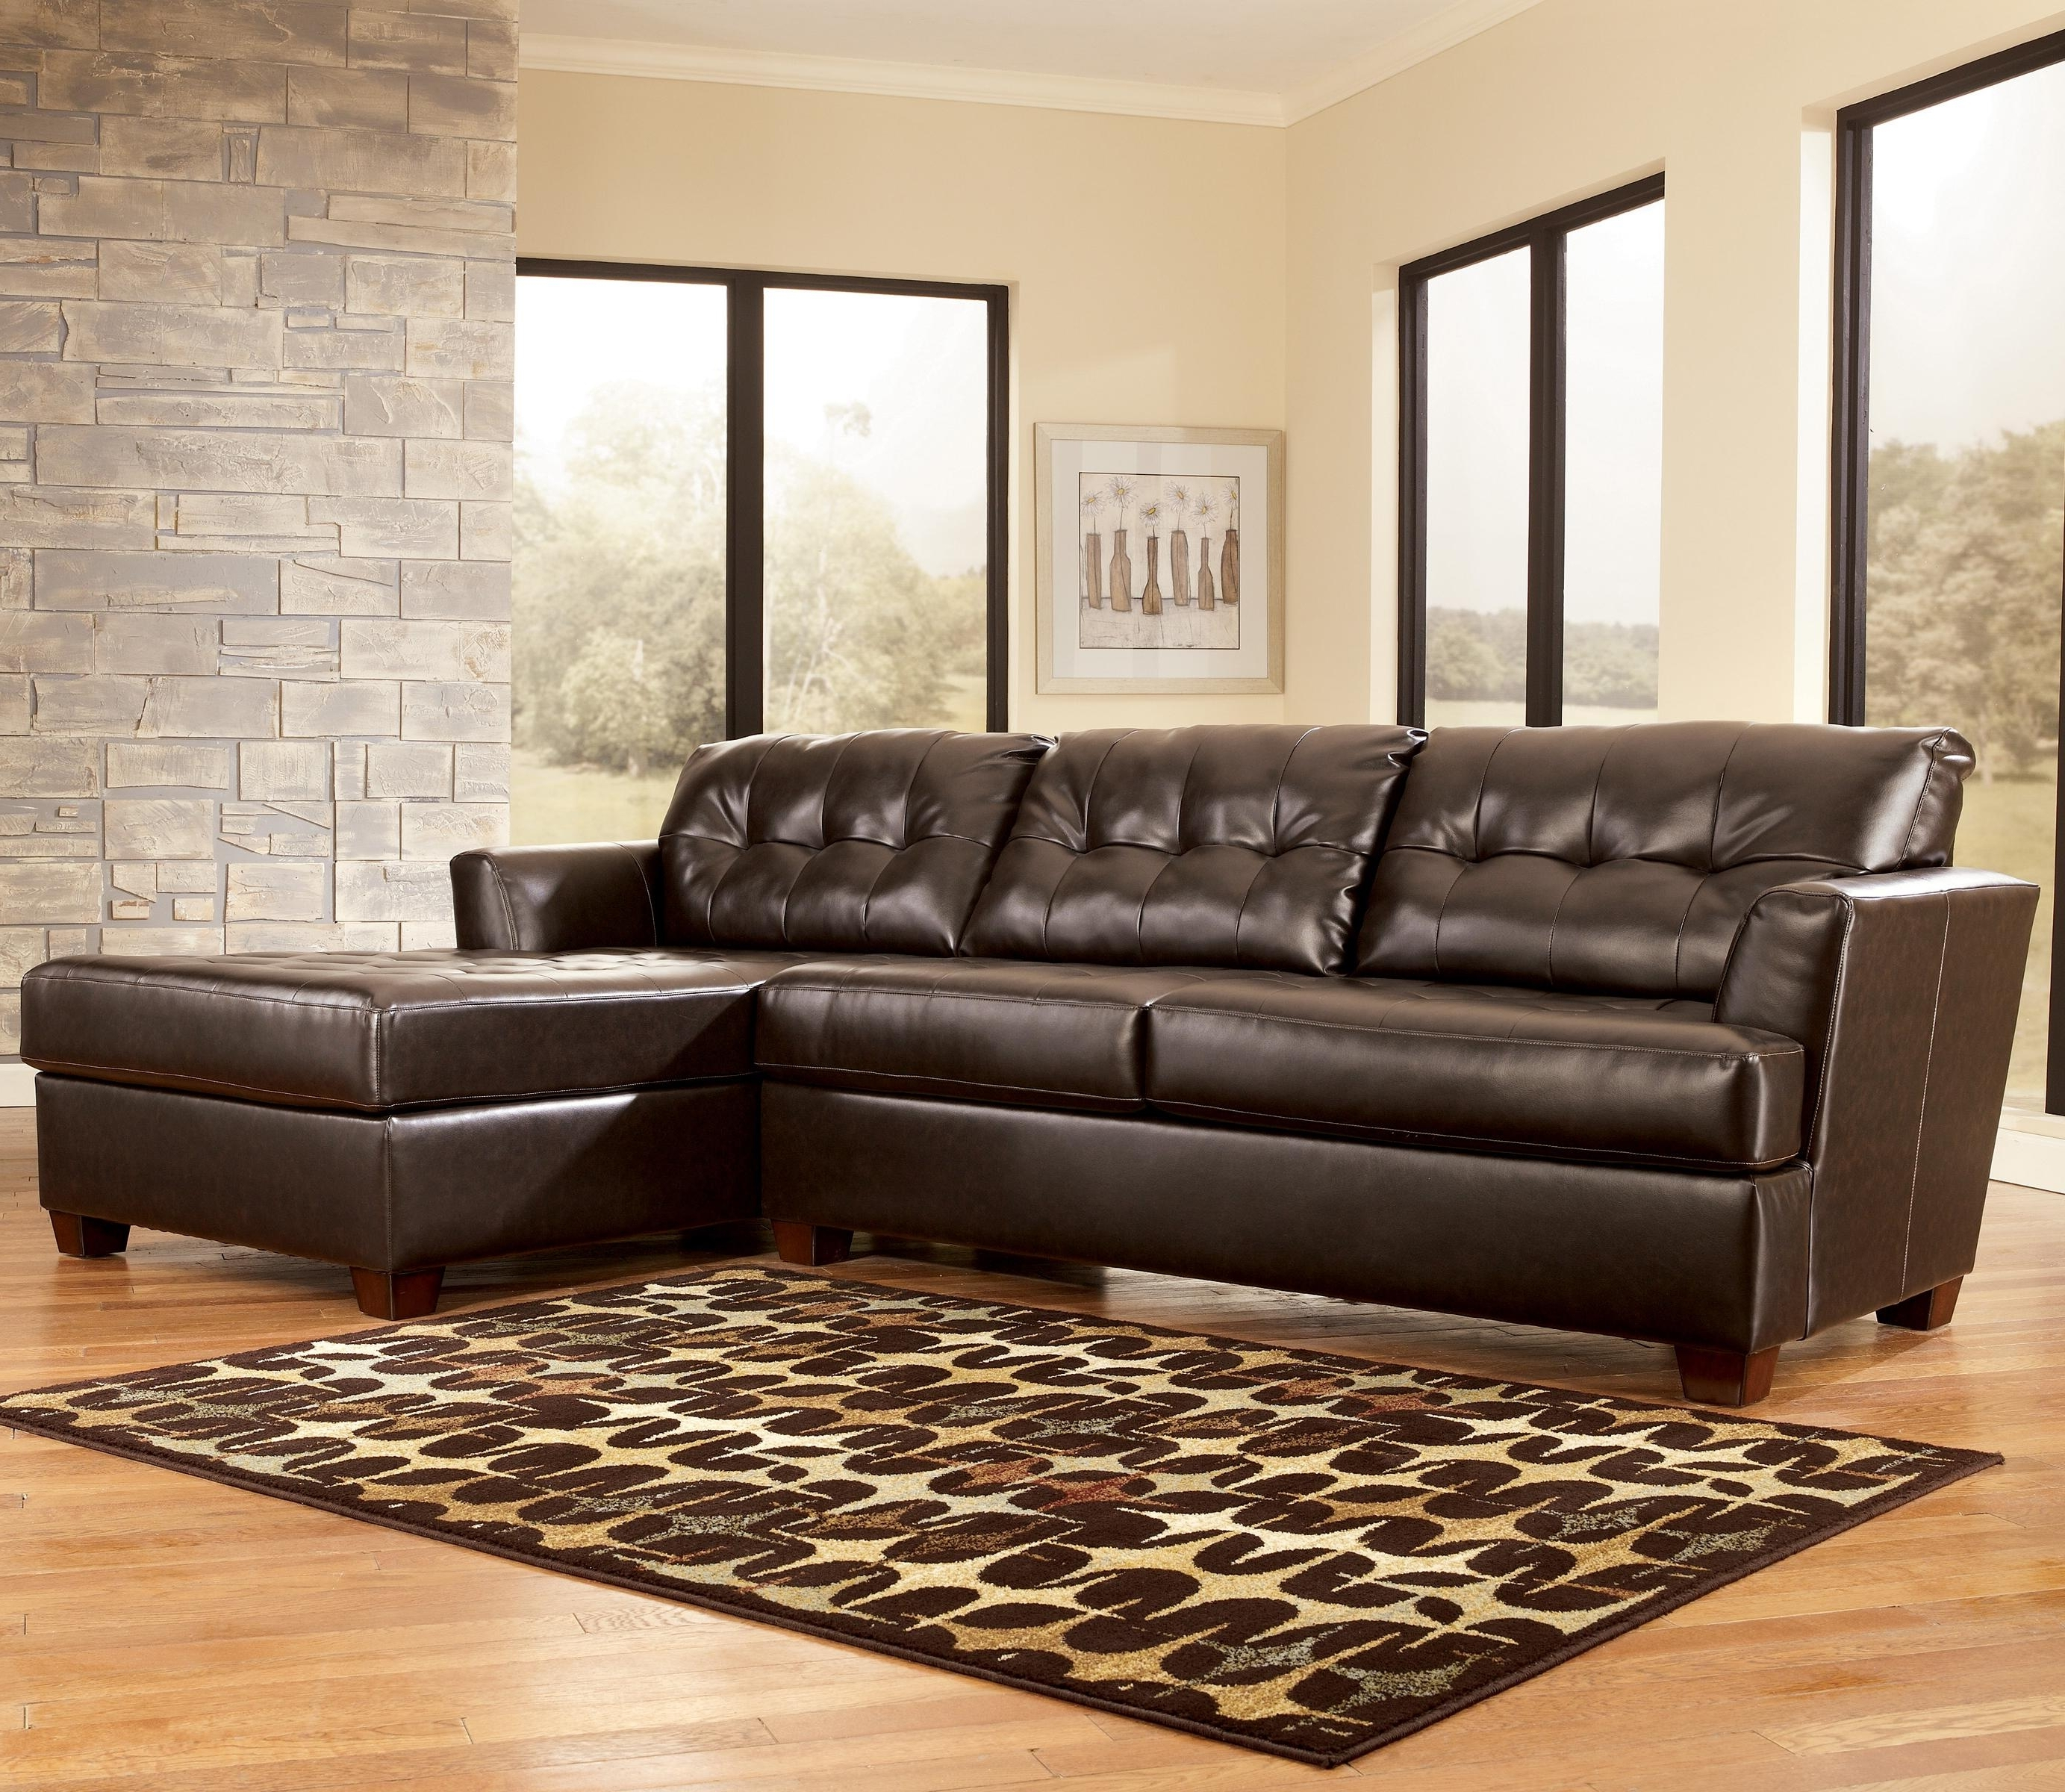 Trendy Dixon Durablend – Chocolate Sectional Sofasignature Design Inside Home Furniture Sectional Sofas (View 11 of 20)